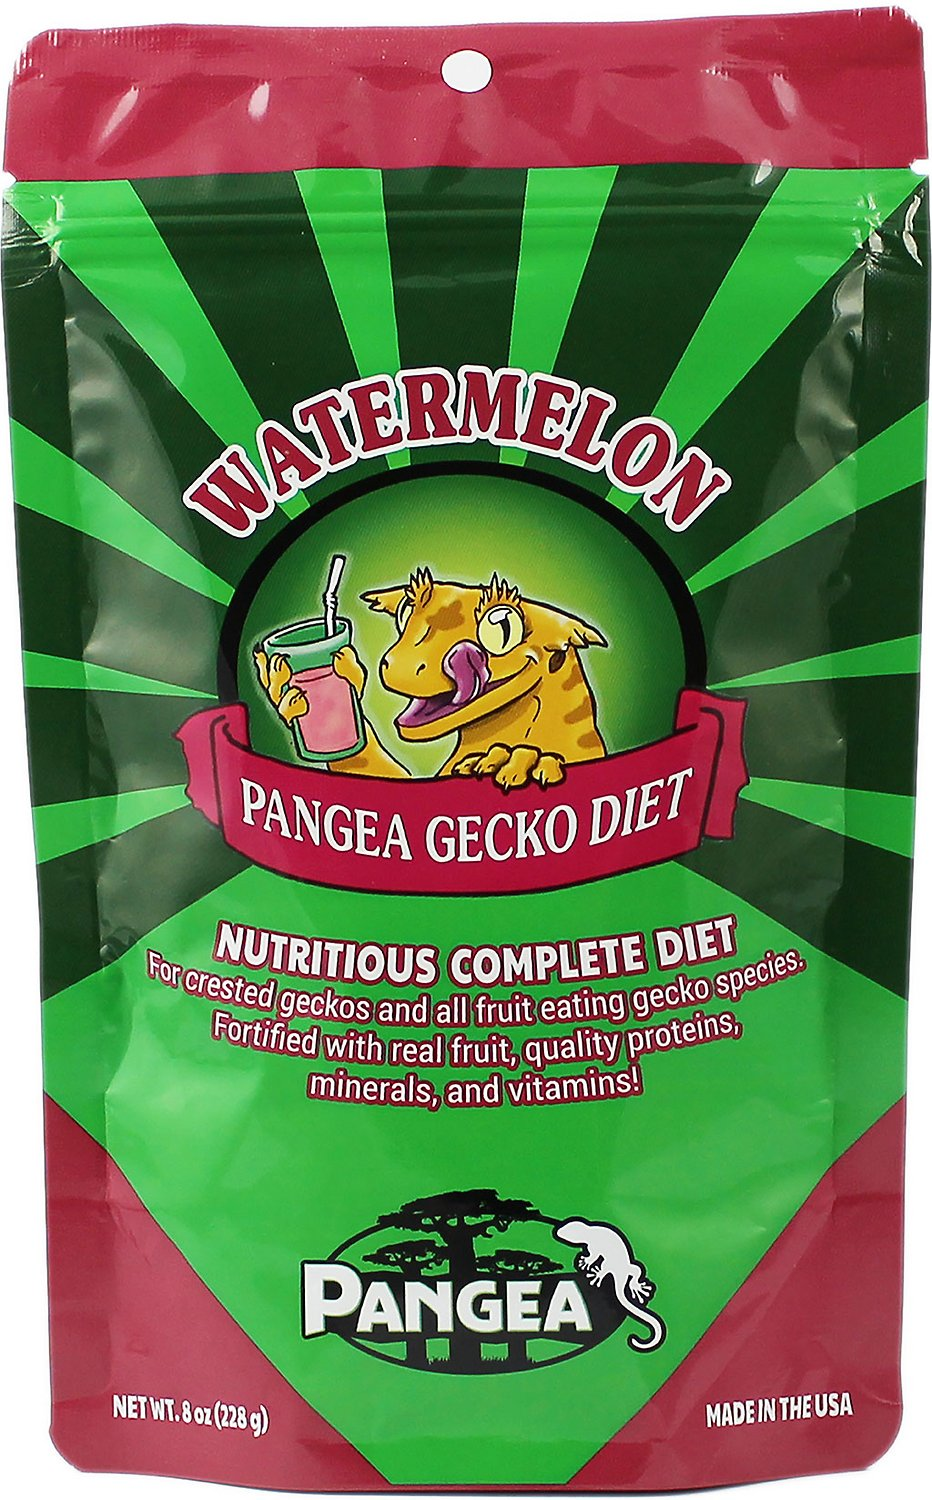 Watermelon Pangea Gecko Diet